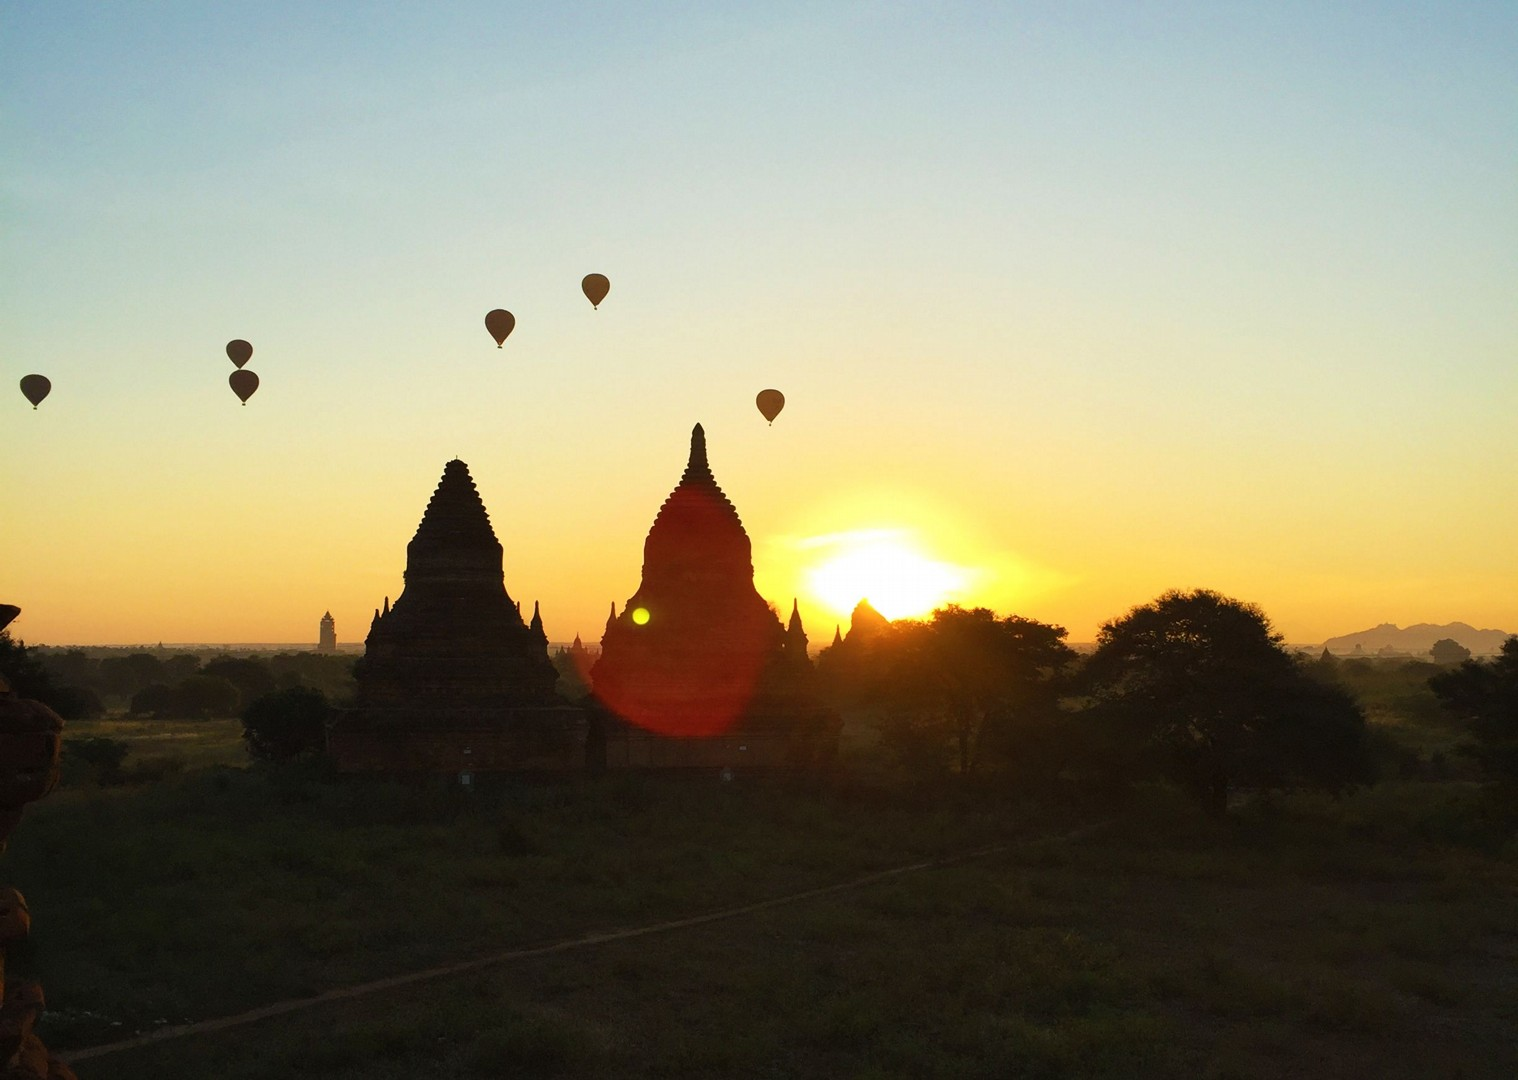 sunset-guided-group-cycling-burma.jpg - Burma - Bagan and Beyond - Cycling Adventures